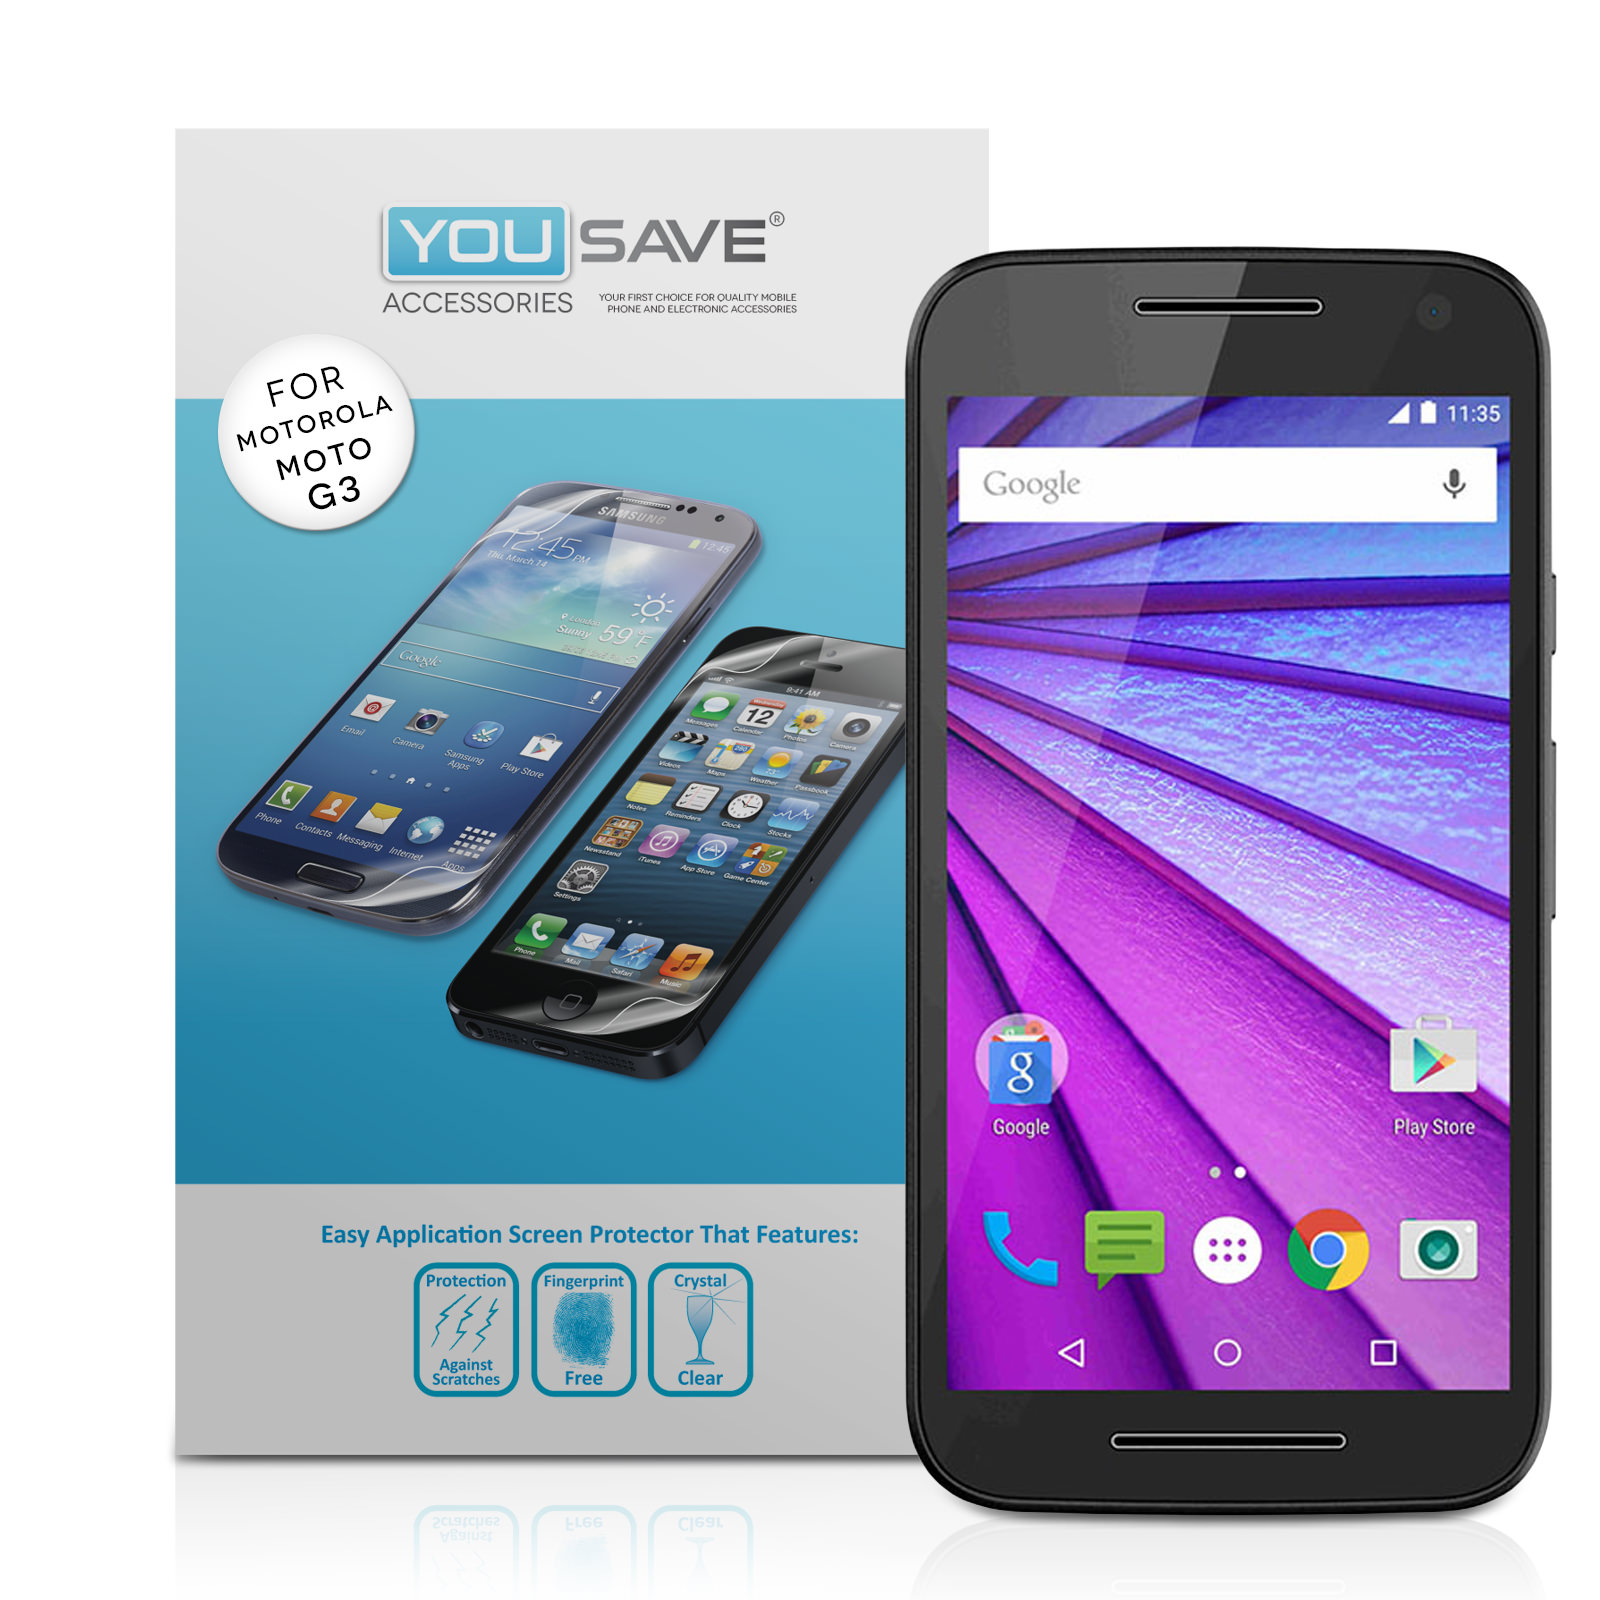 Yousave Accessories Motorola Moto G 3rd Gen Screen Protectors - 5 Pack